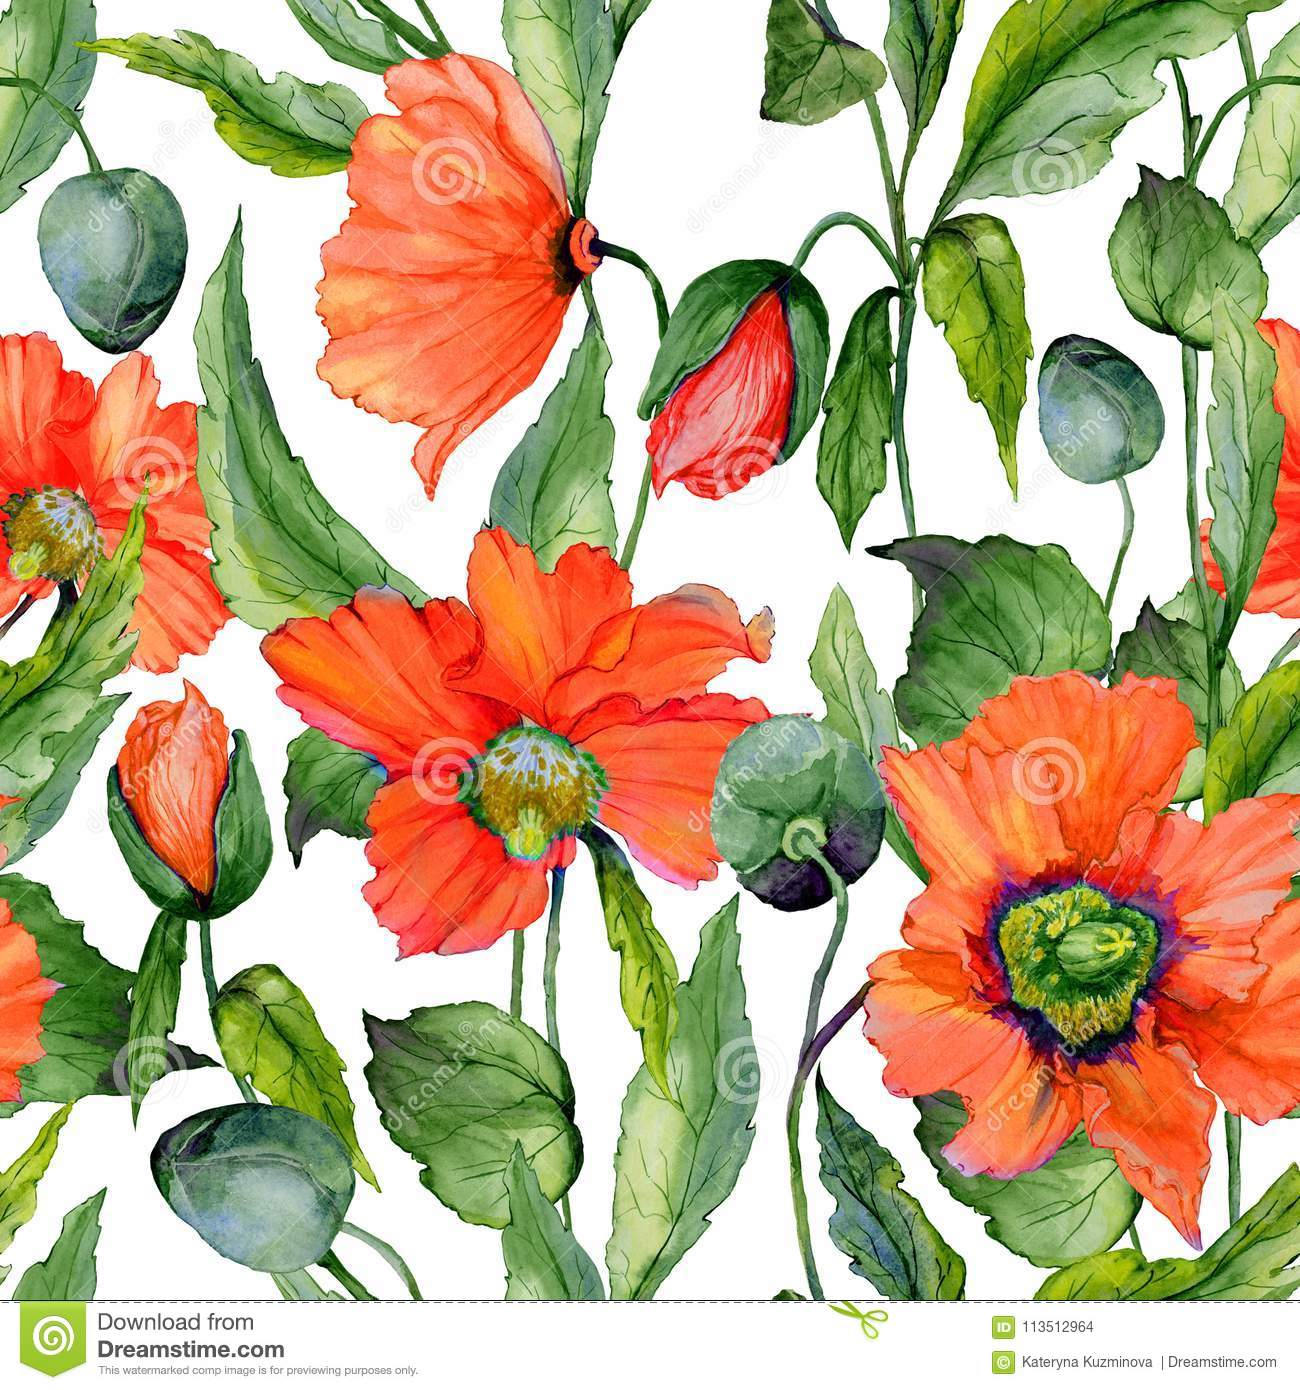 Beautiful red poppy flowers with green leaves on white background. Seamless vivid floral pattern. Watercolor painting.